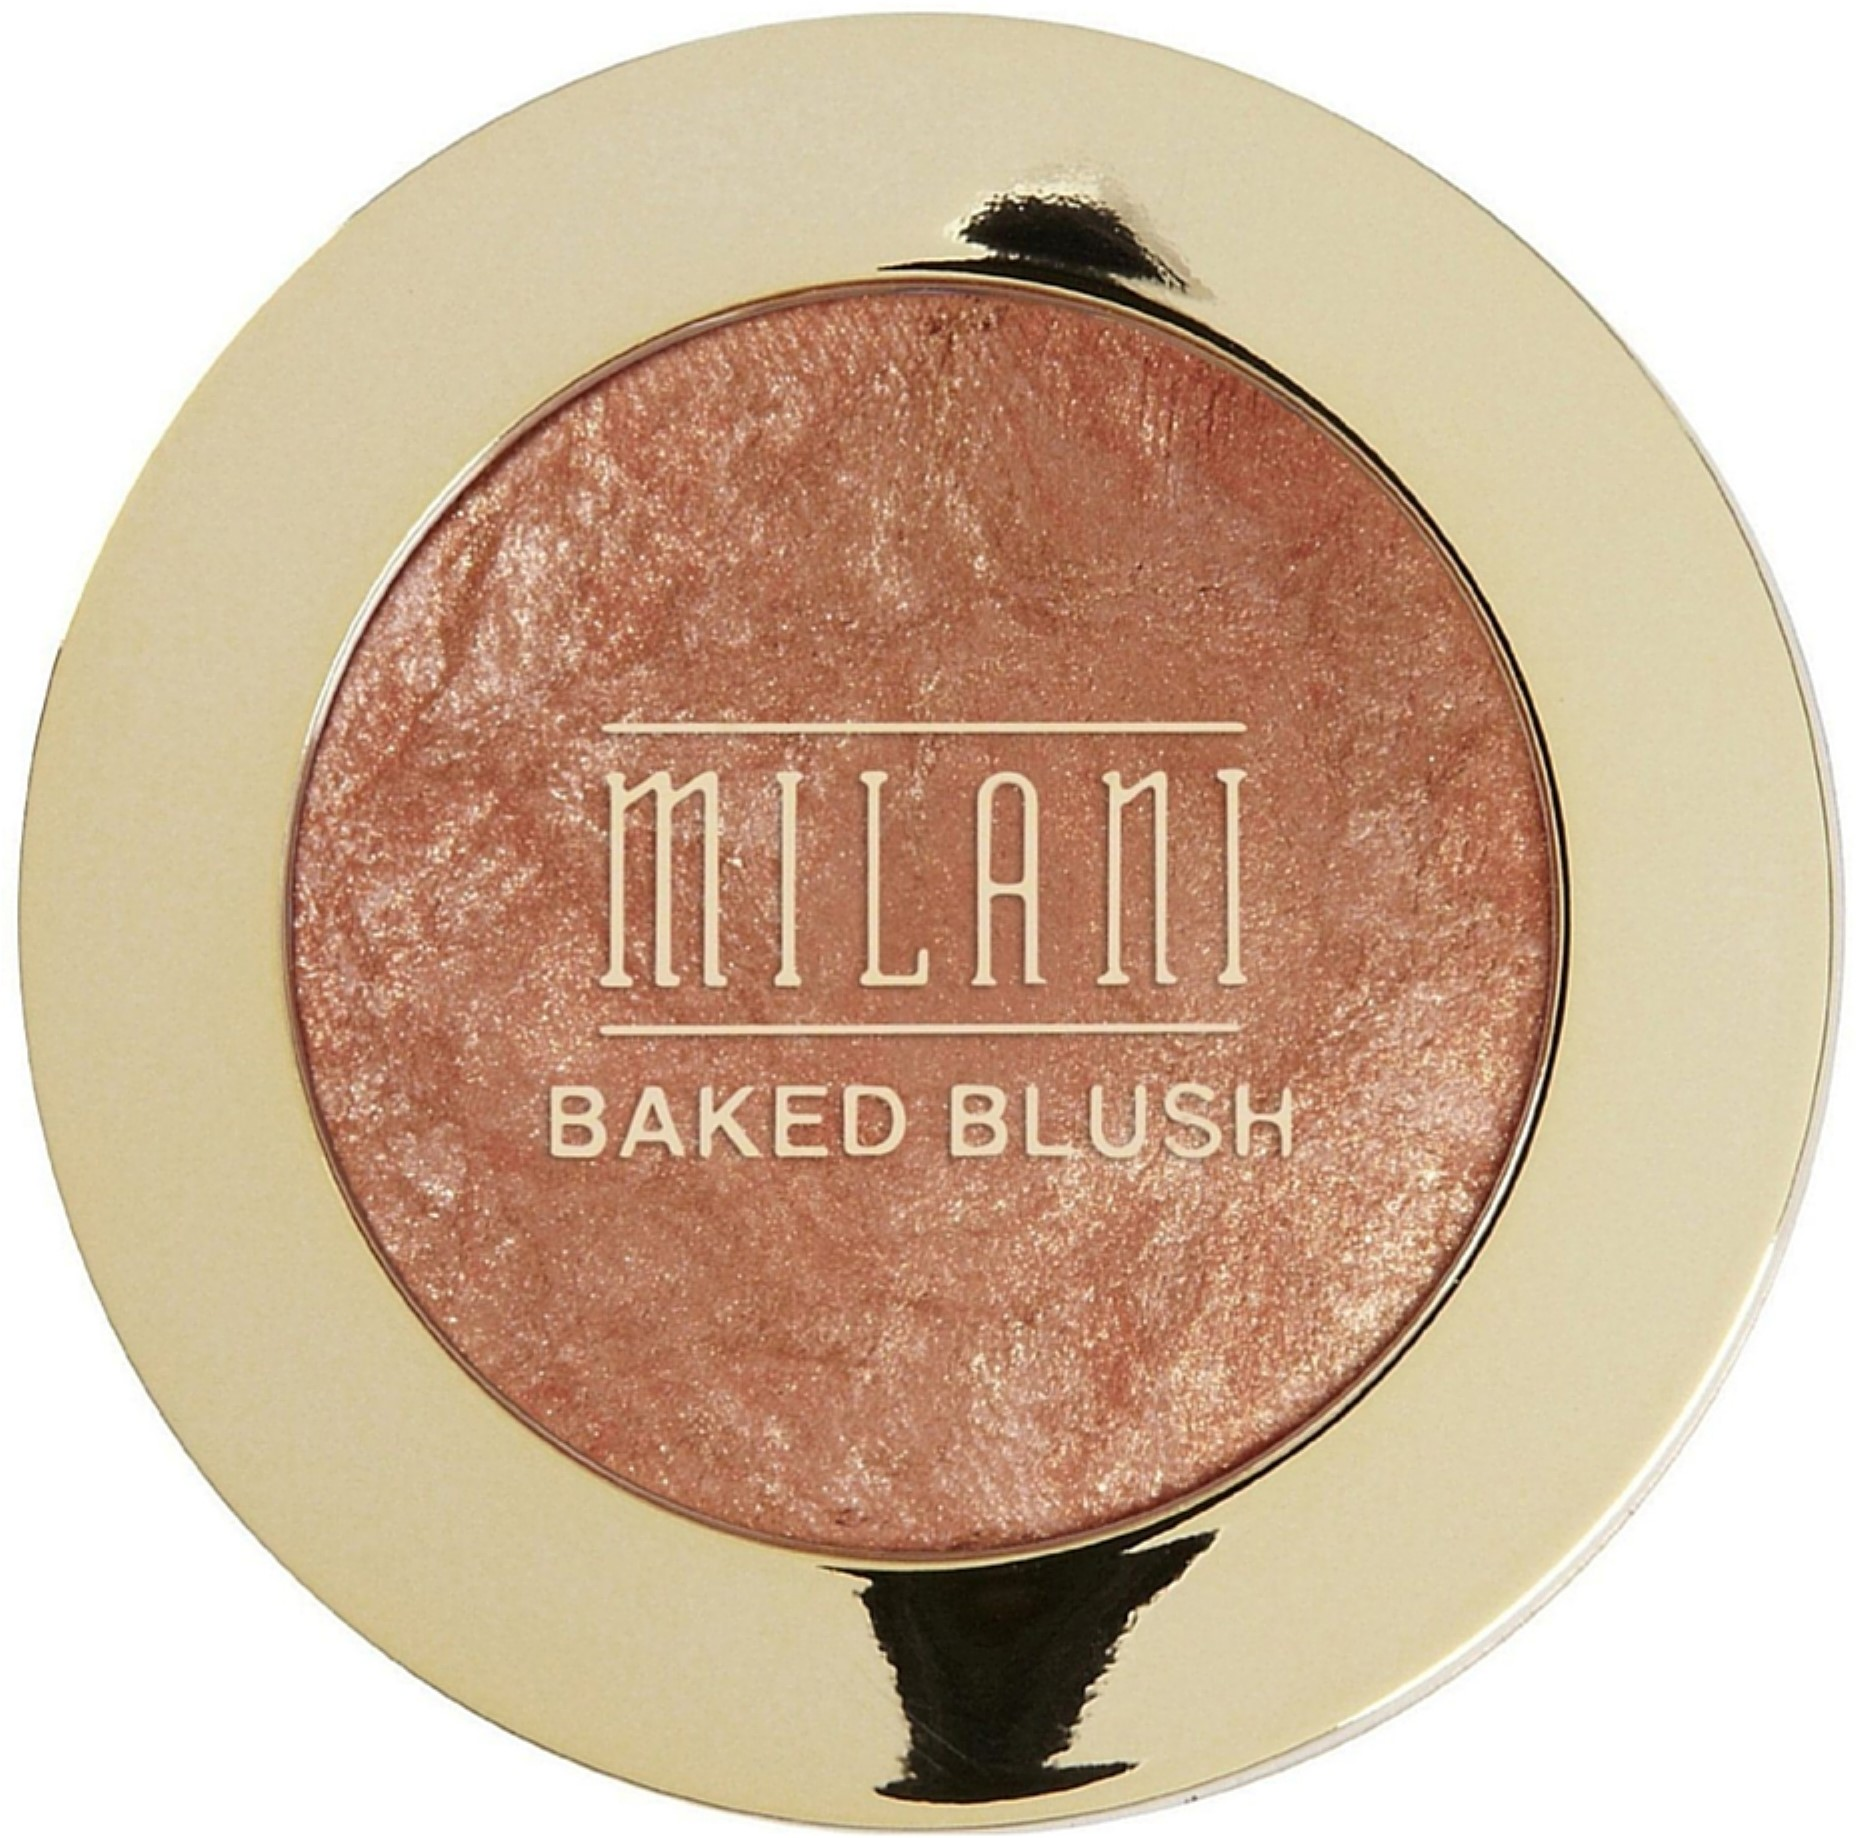 Milani Baked Powder Blush, Bellissimo Bronze 0.12 oz (Pack of 2)